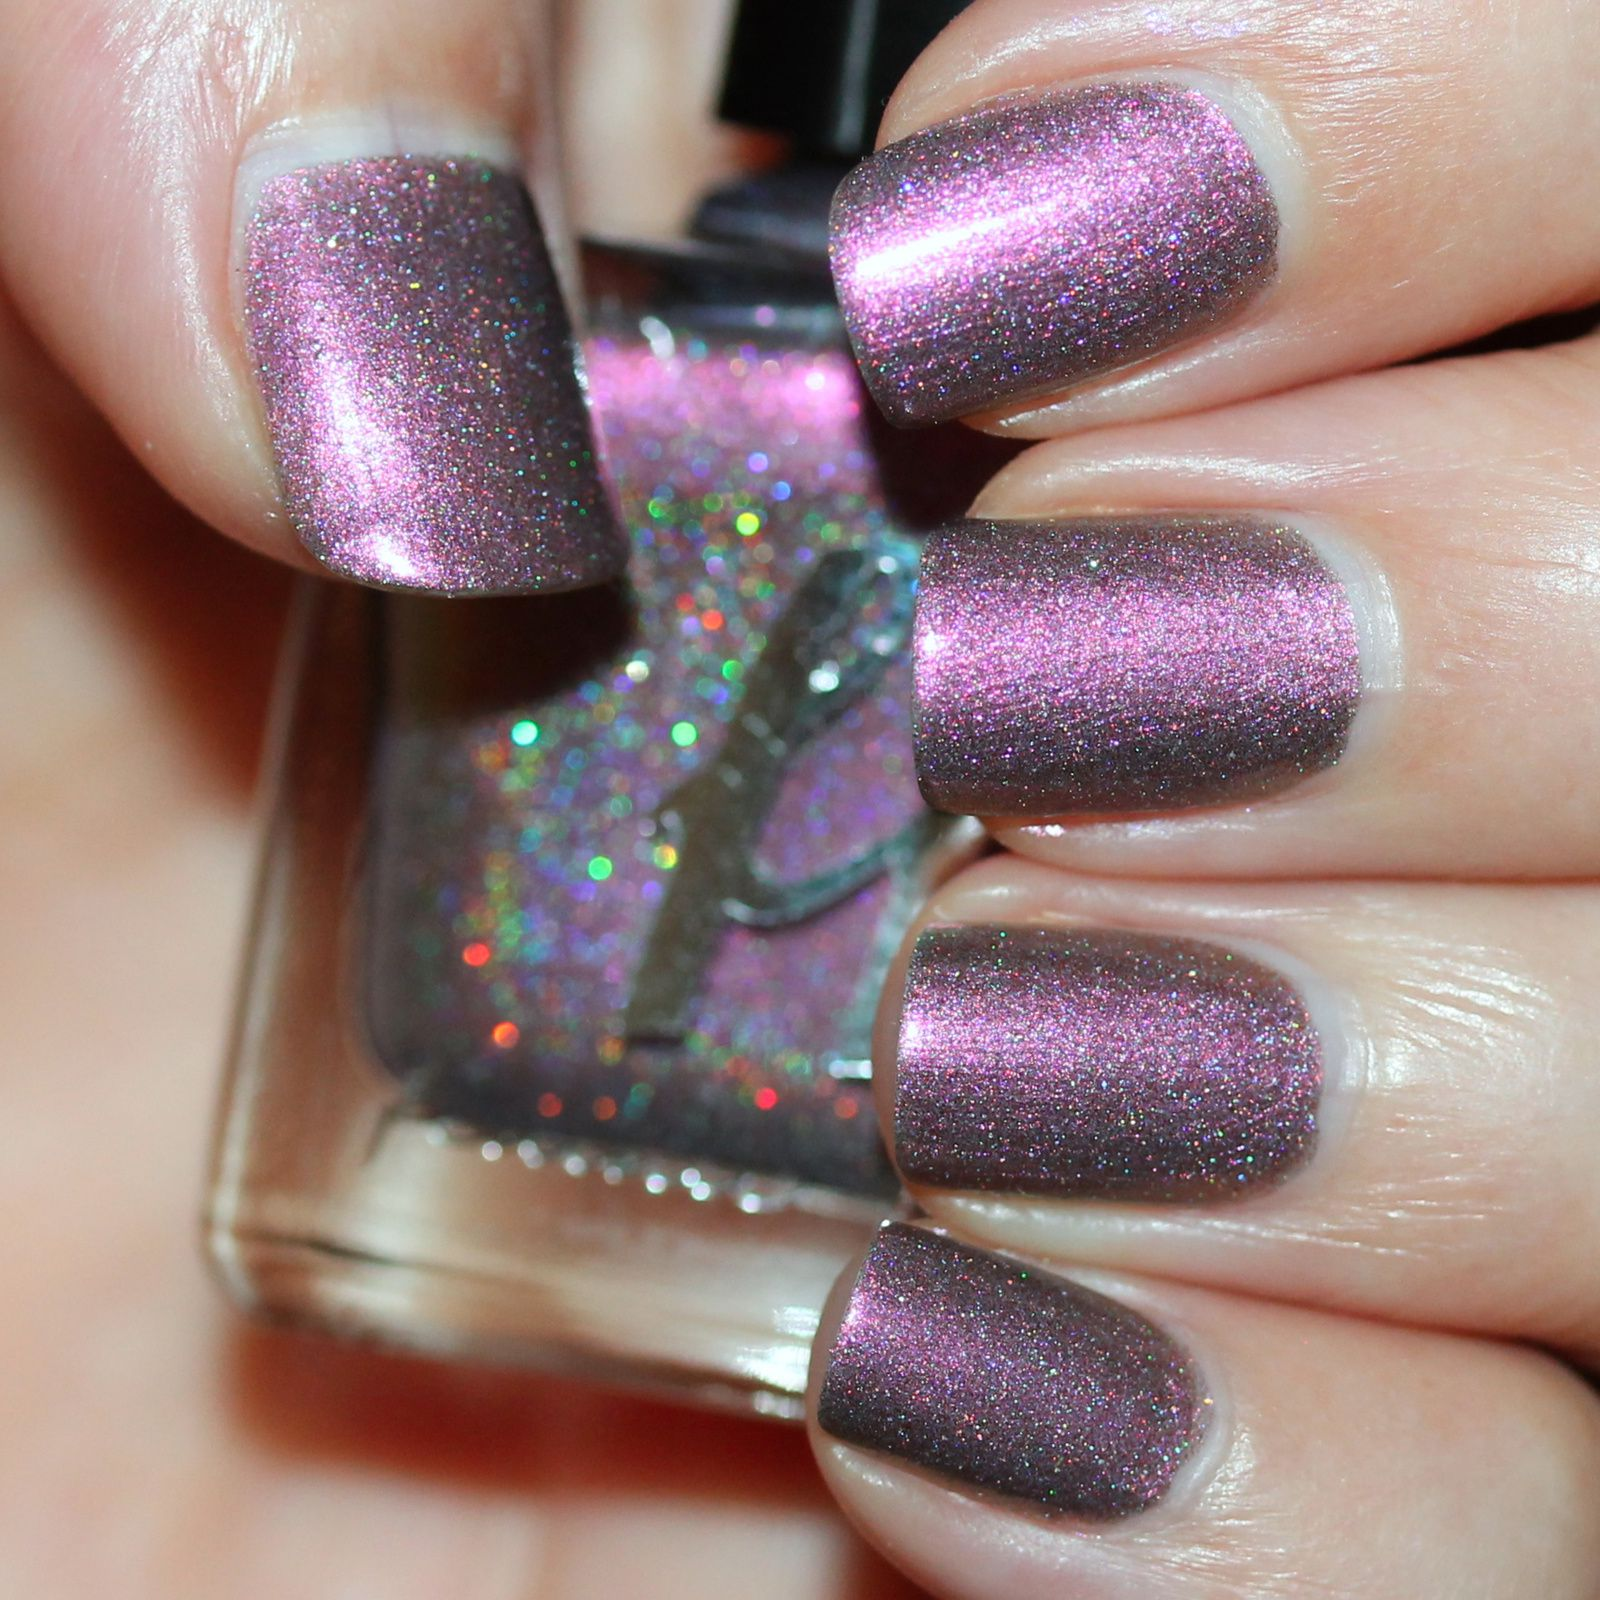 Femme Fatale Cosmetics Fractured Horizon (2 coats, not top coat)